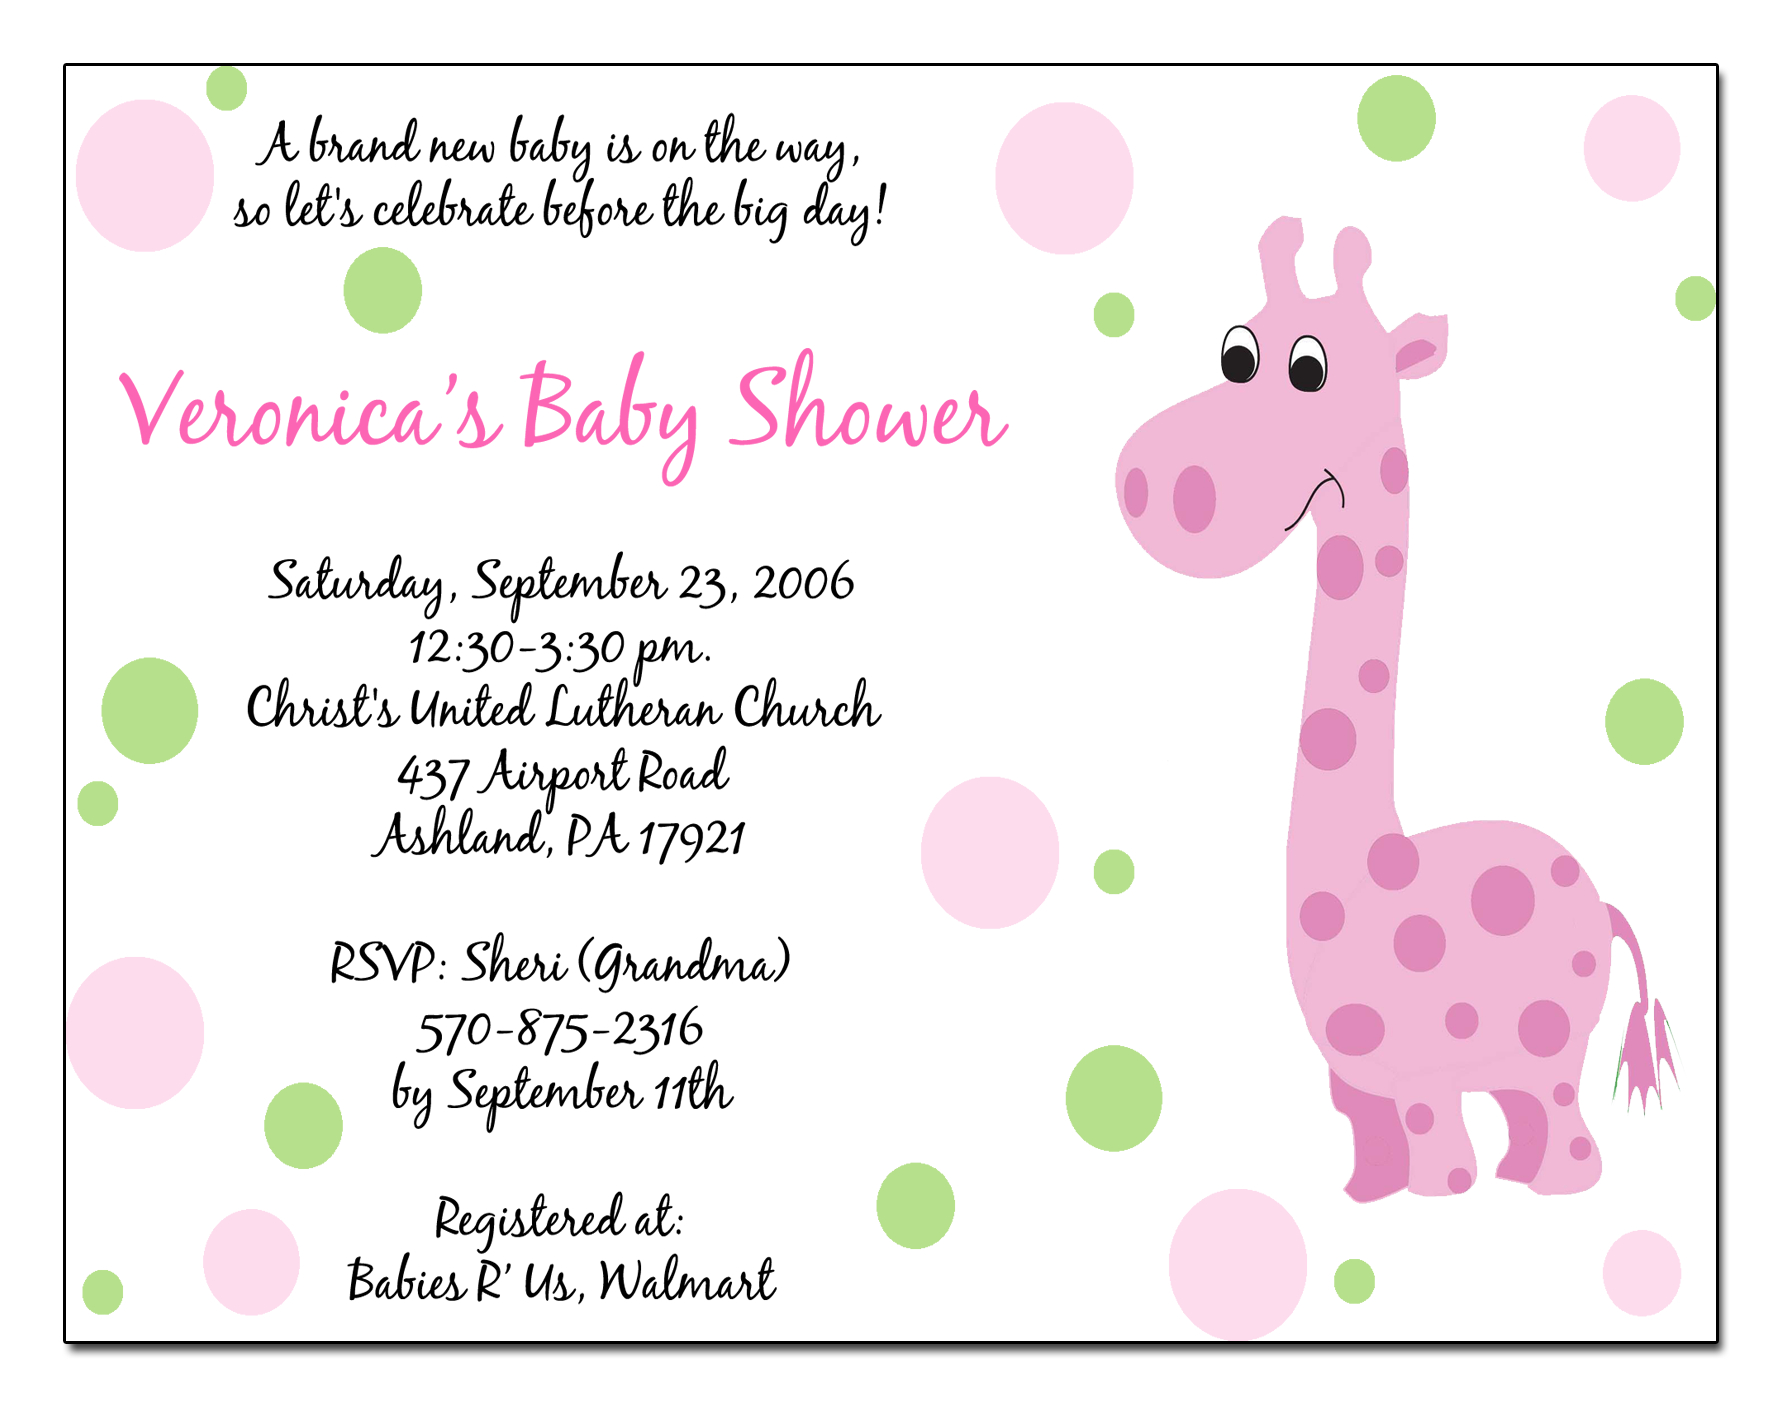 Baby Shower Invitation Sample Email